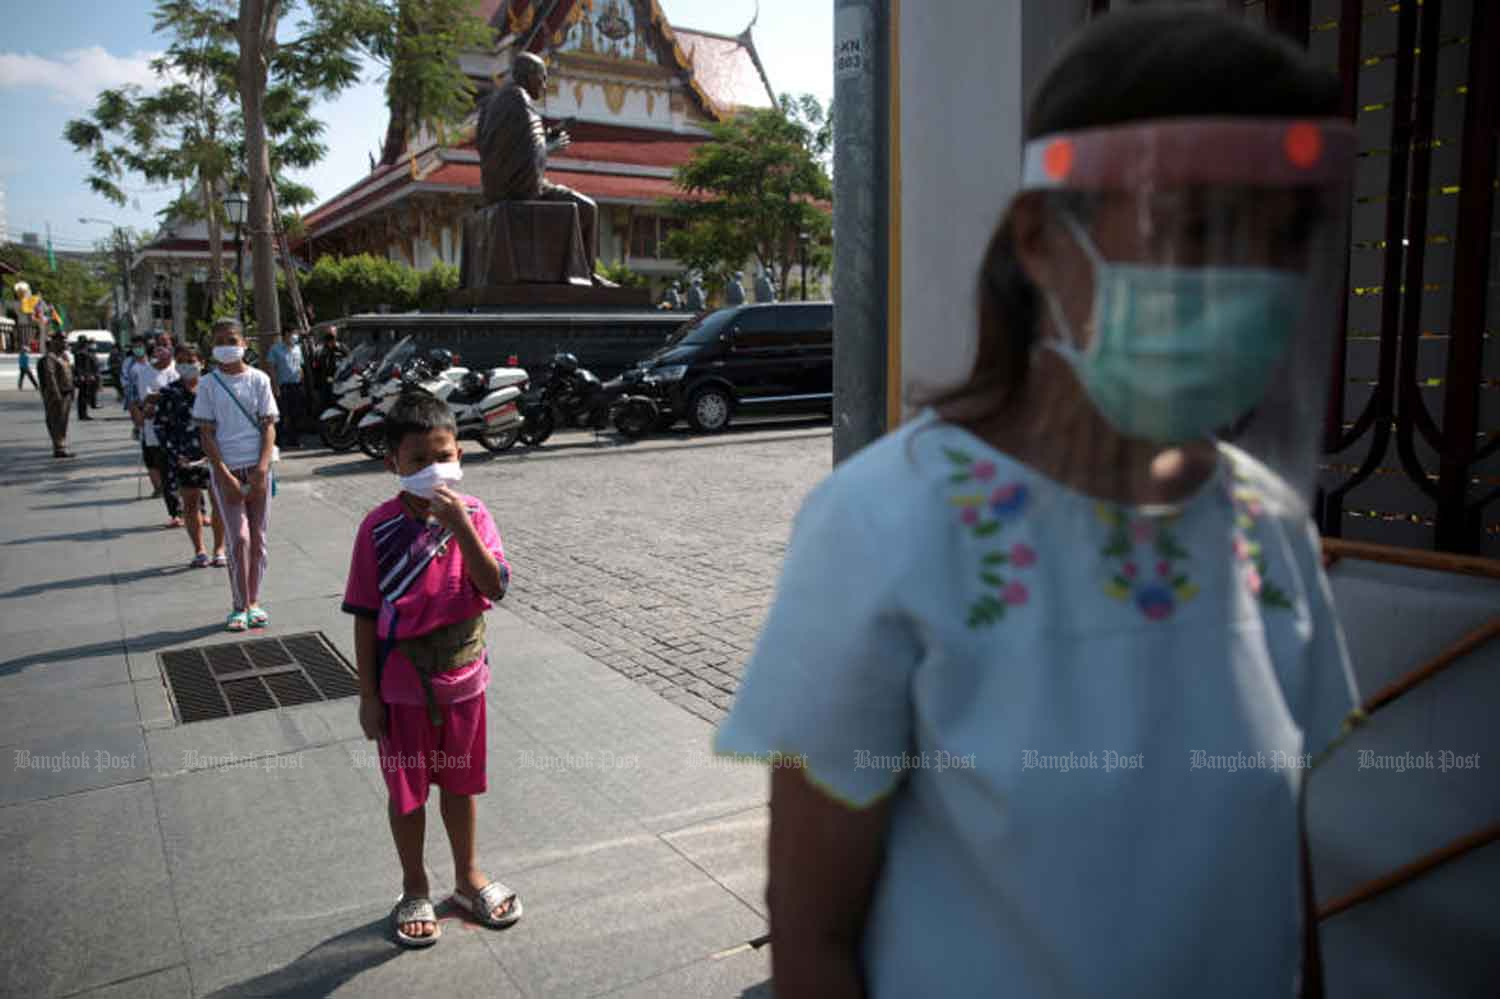 Safe distancing is the norm, as people queue to receive assistance packages at Wat Rakhang Khositaram in Bangkok on Wednesday morning, when the government announced there were no new Covid-19 cases over the previous 24 hours. (Photo: Chanat Katanyu)